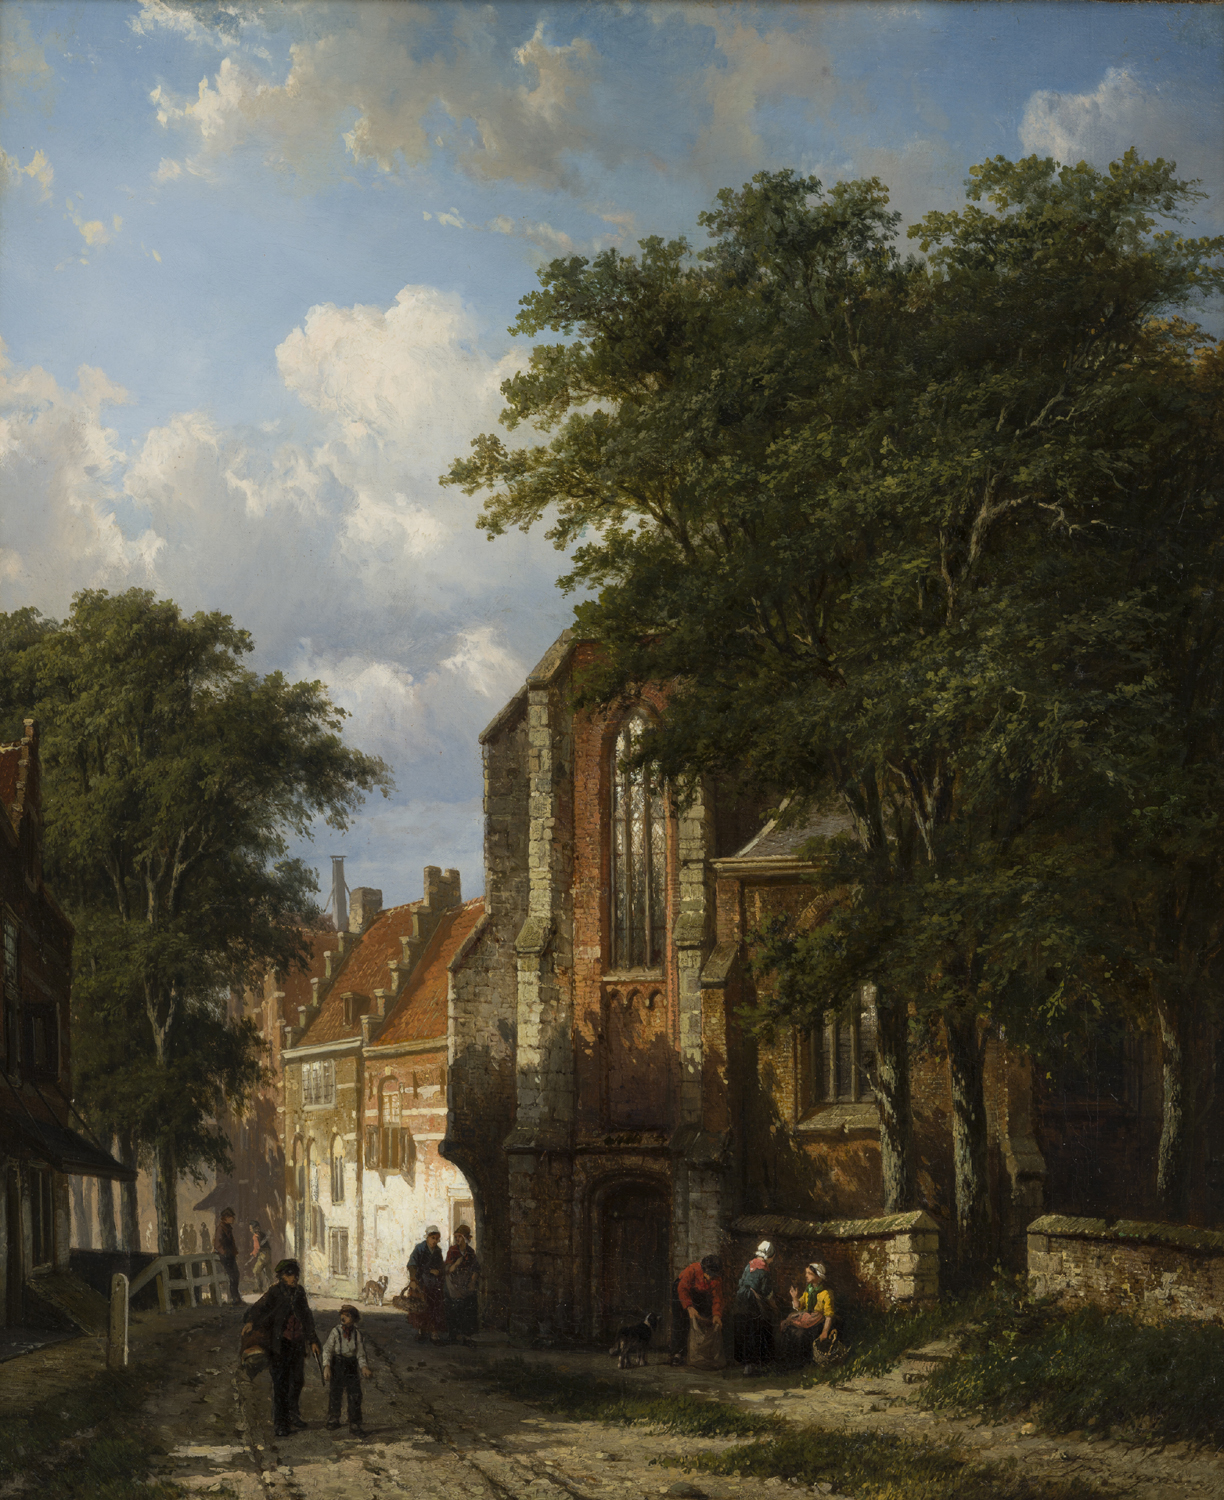 Cornelis Springer | Asperen, a Dutch town with figures by a church | Kunsthandel Bies | Bies Gallery